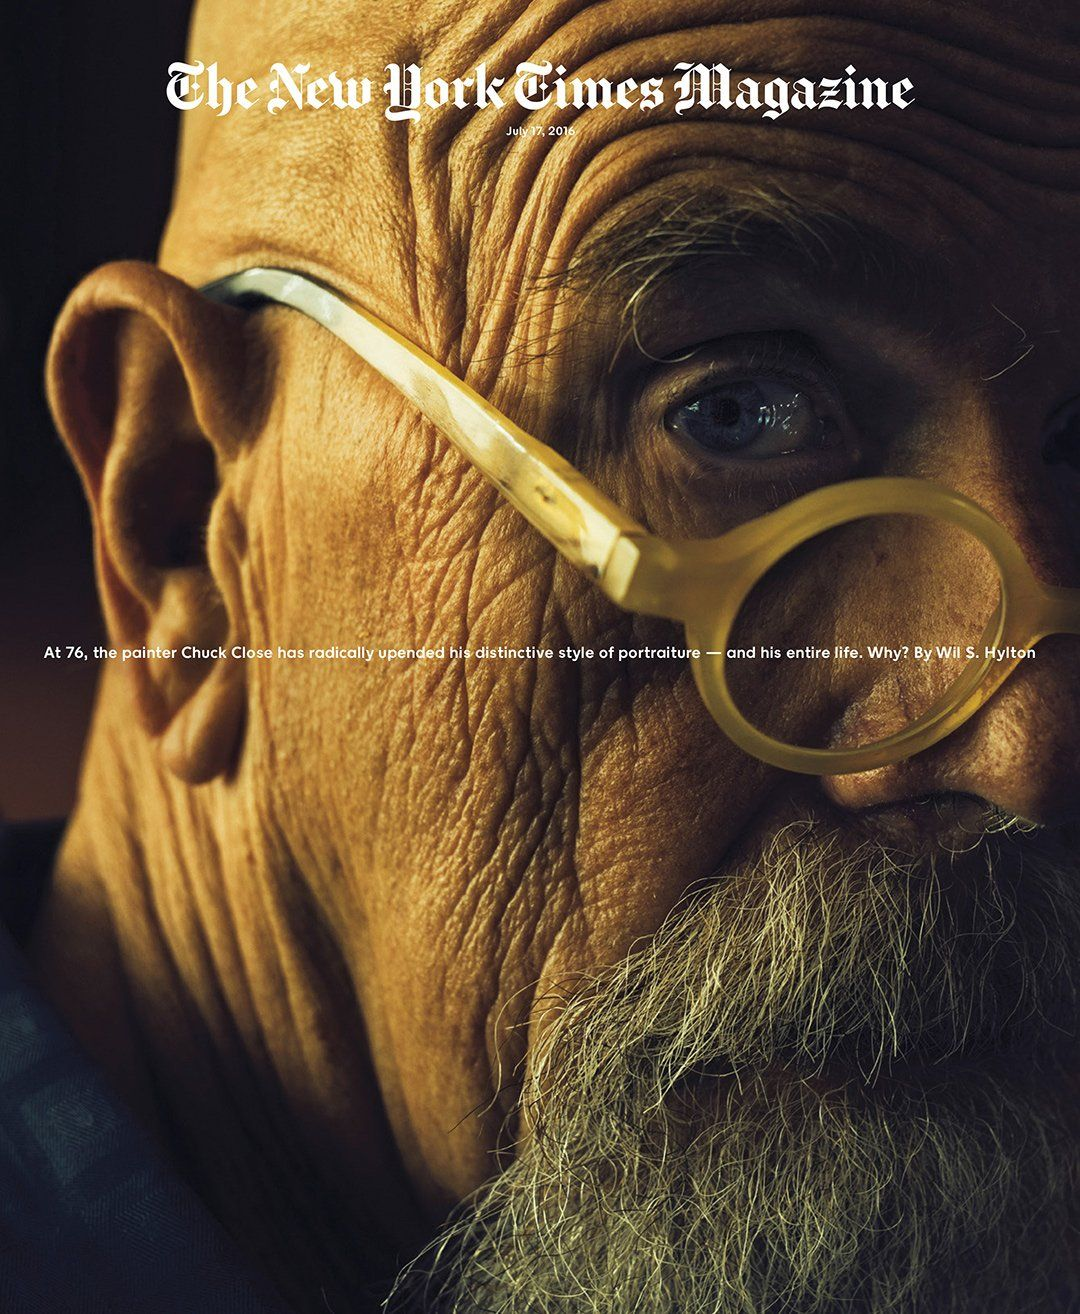 This week's cover story: The Mysterious Metamorphosis of Chuck Close.